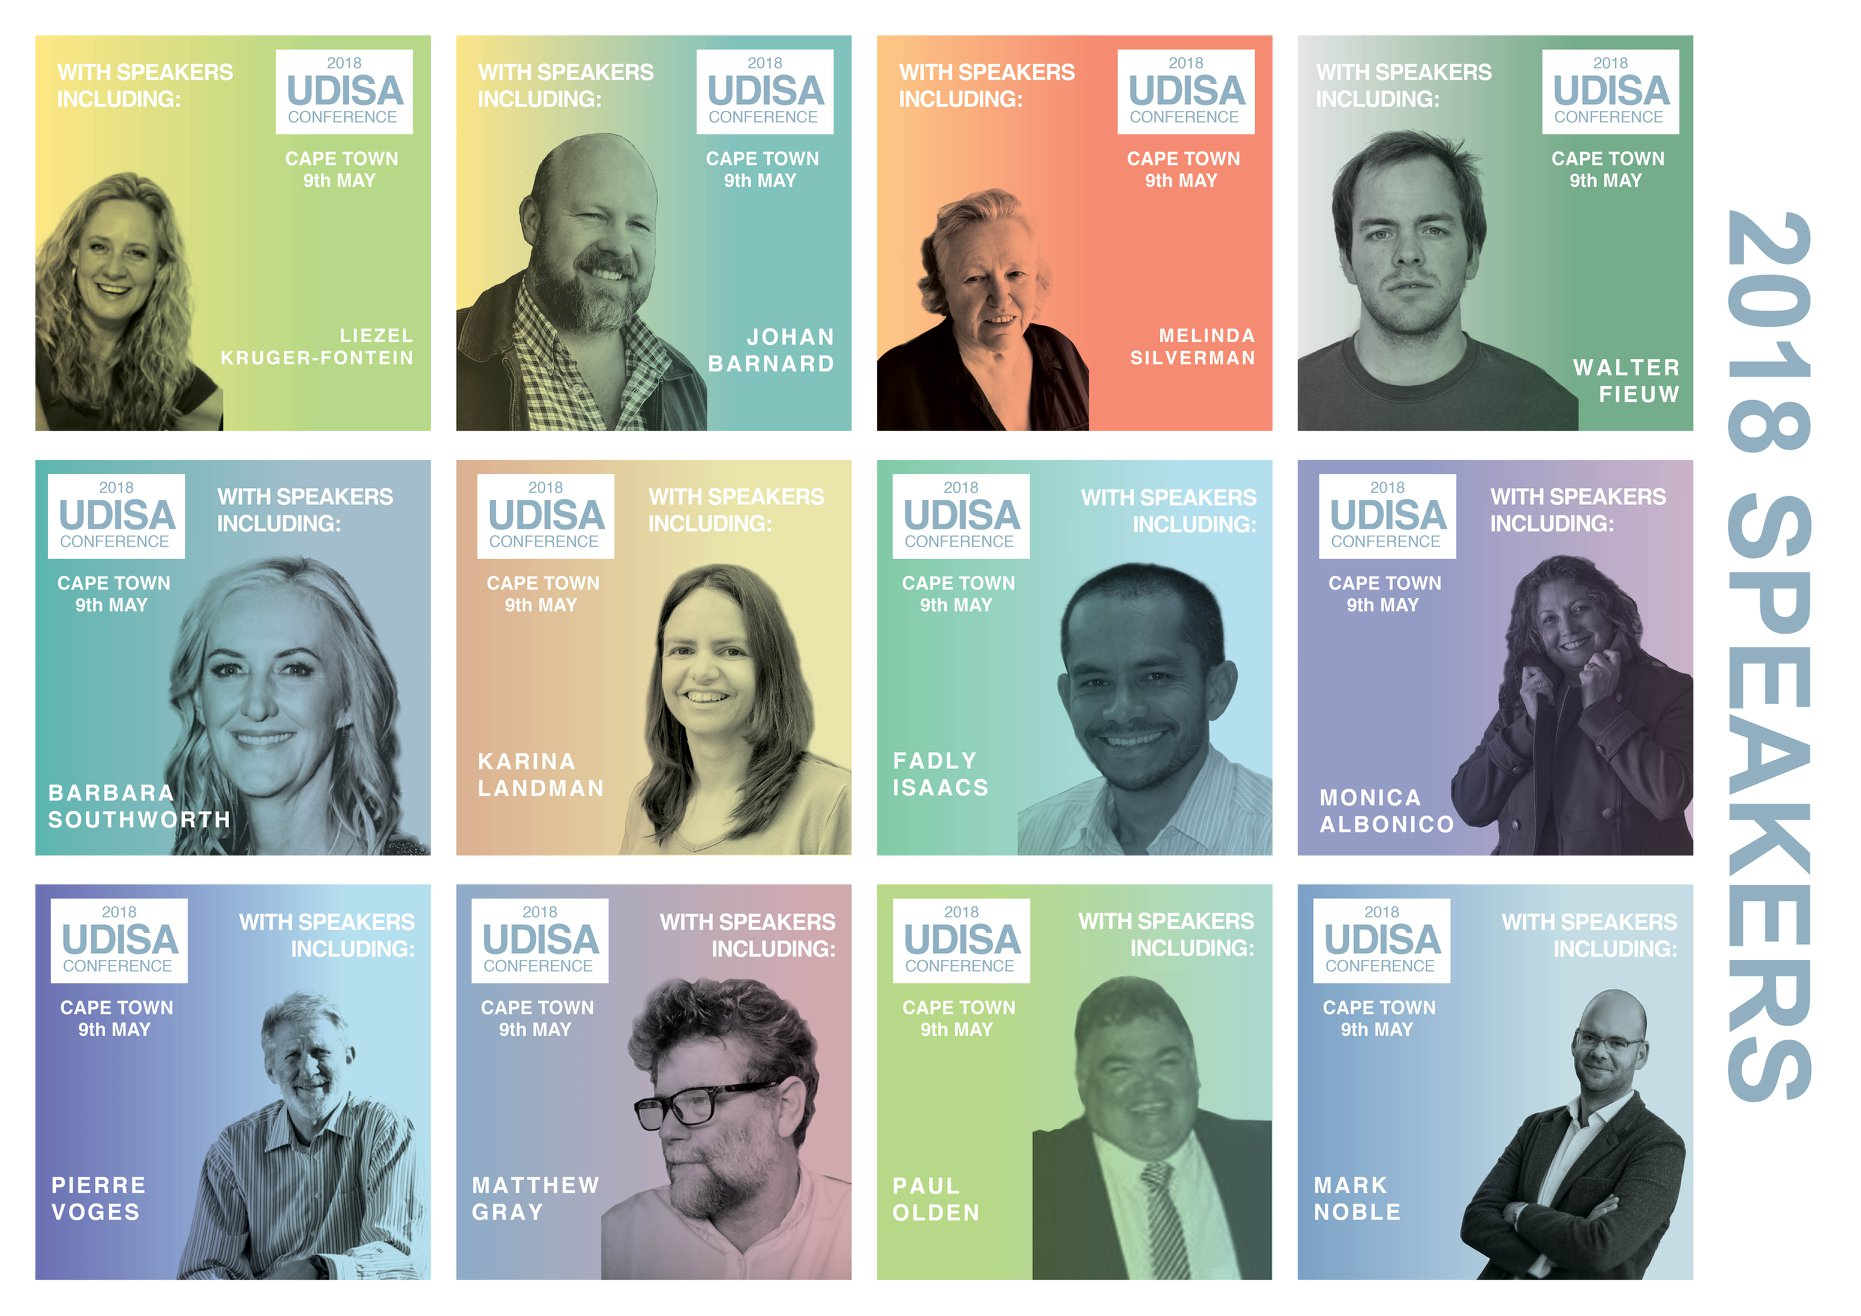 Speakers at the 2018 UDISA Conference. Source: UDISA Facebook page